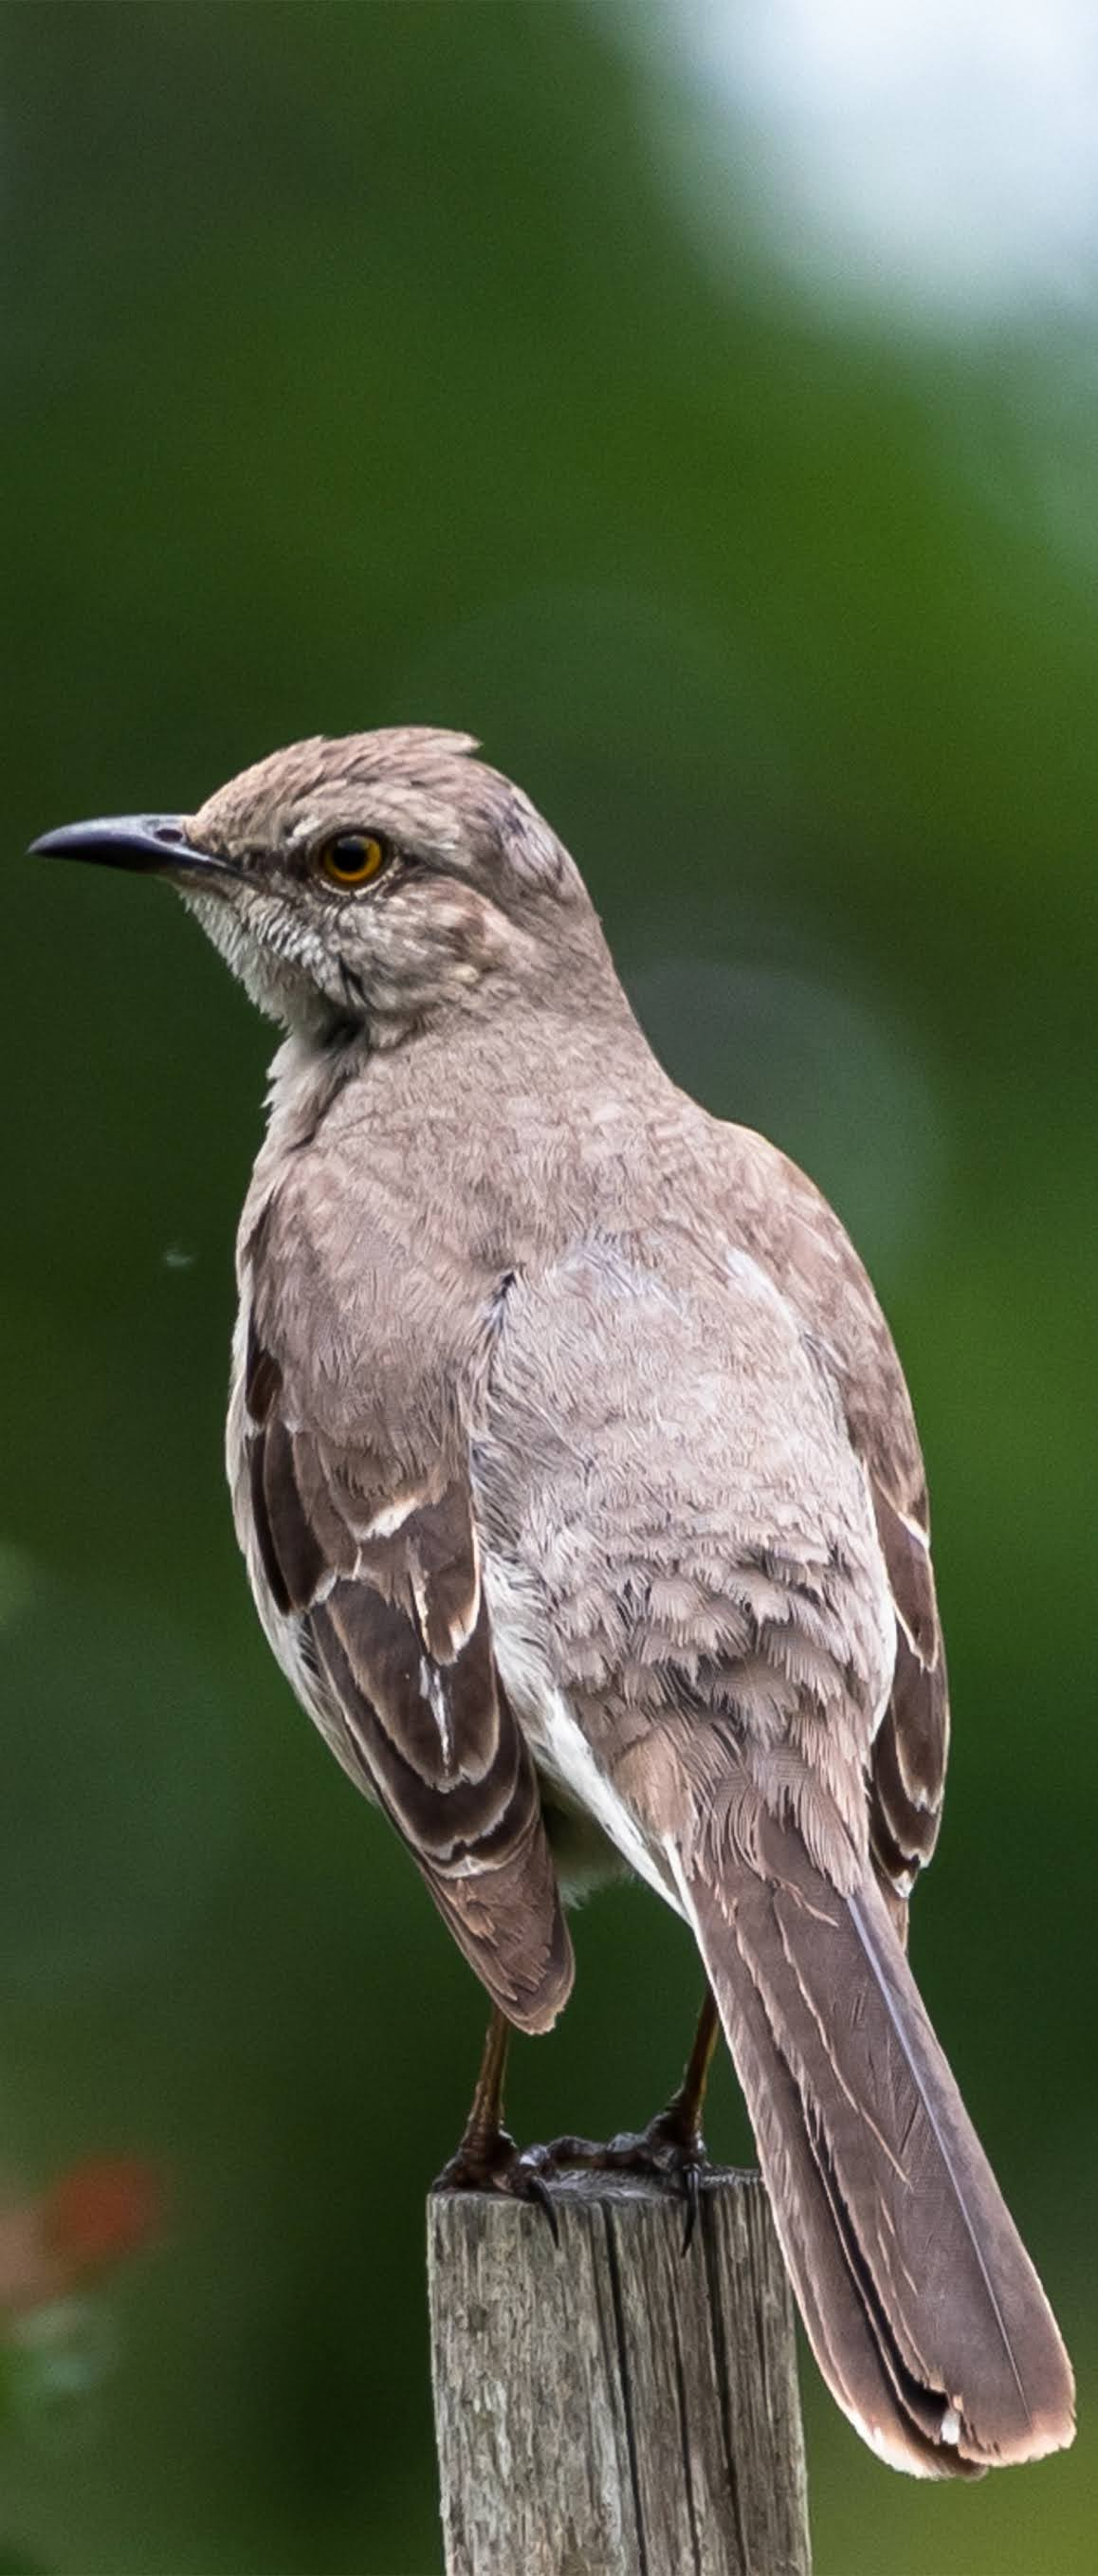 Picture of a mockingbird.